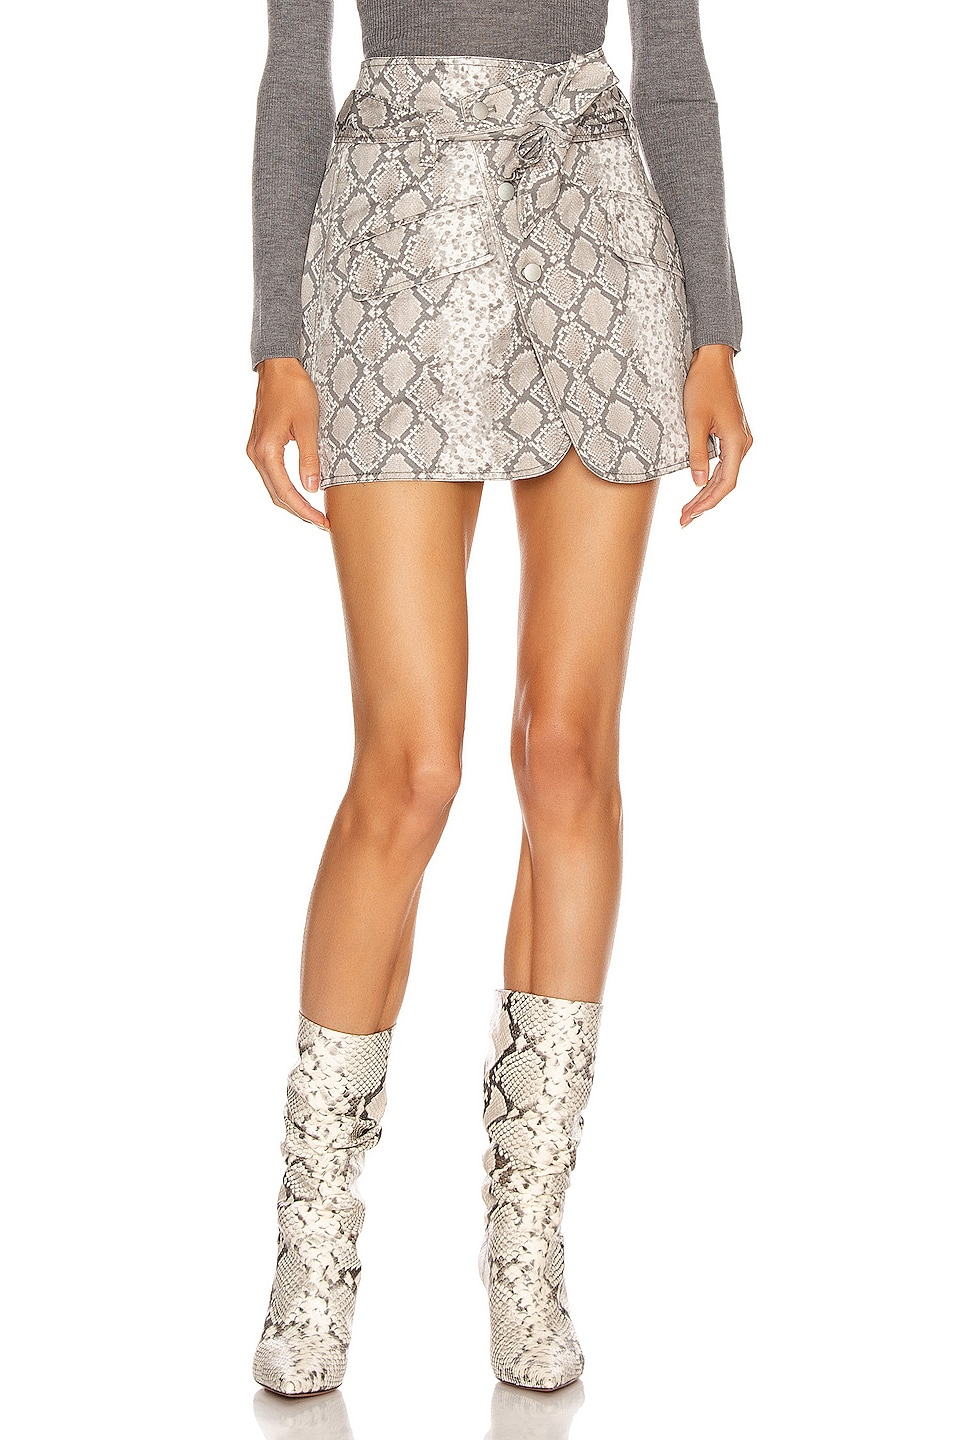 Image 1 of Marissa Webb Katrina Print Canvas Skirt in White Python